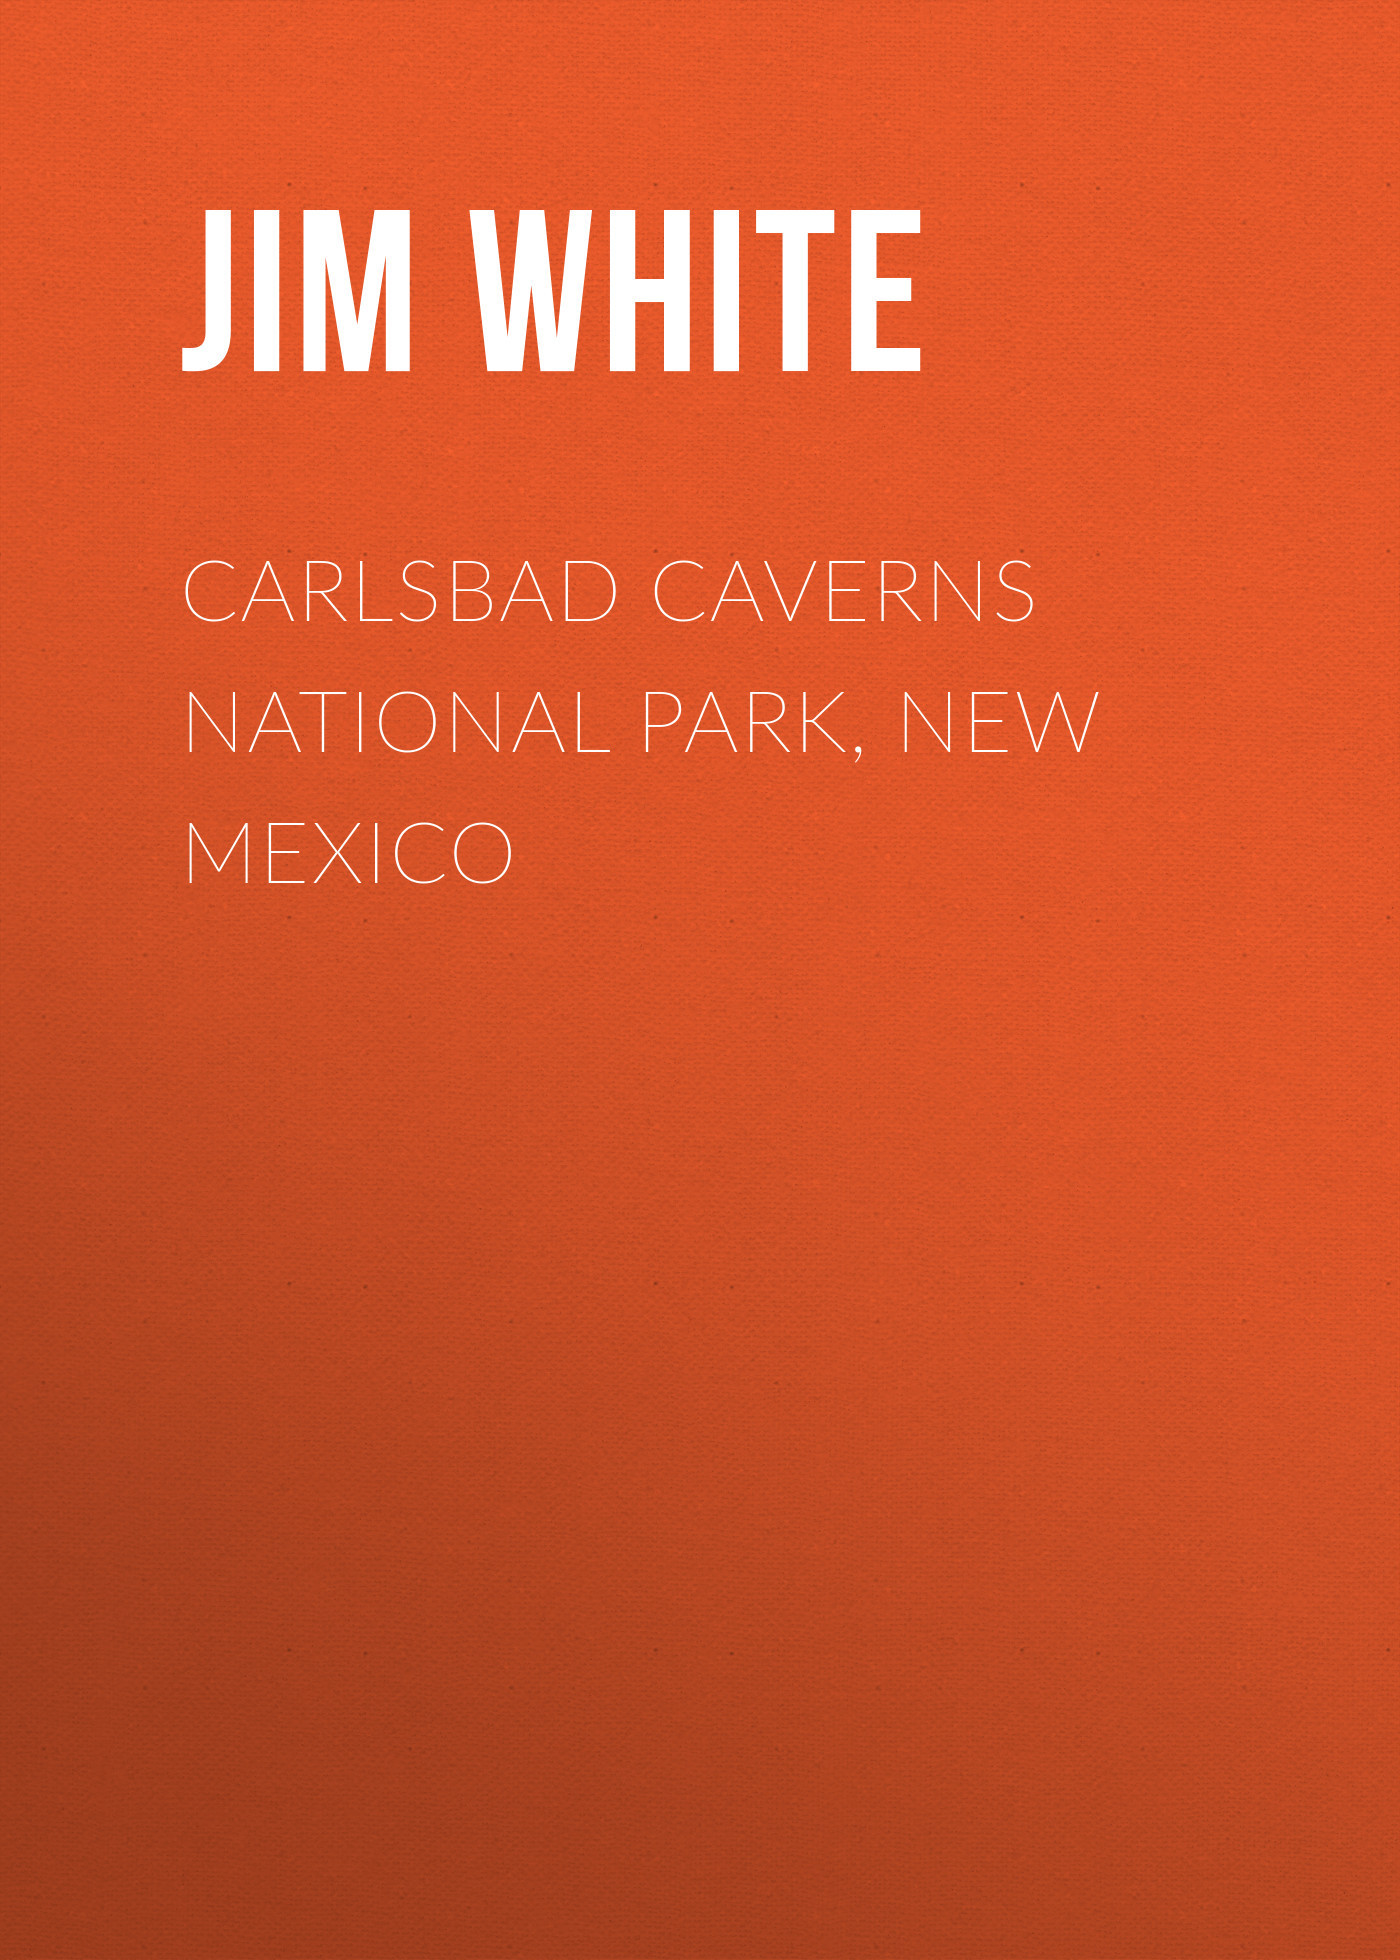 Jim White Carlsbad Caverns National Park, New Mexico